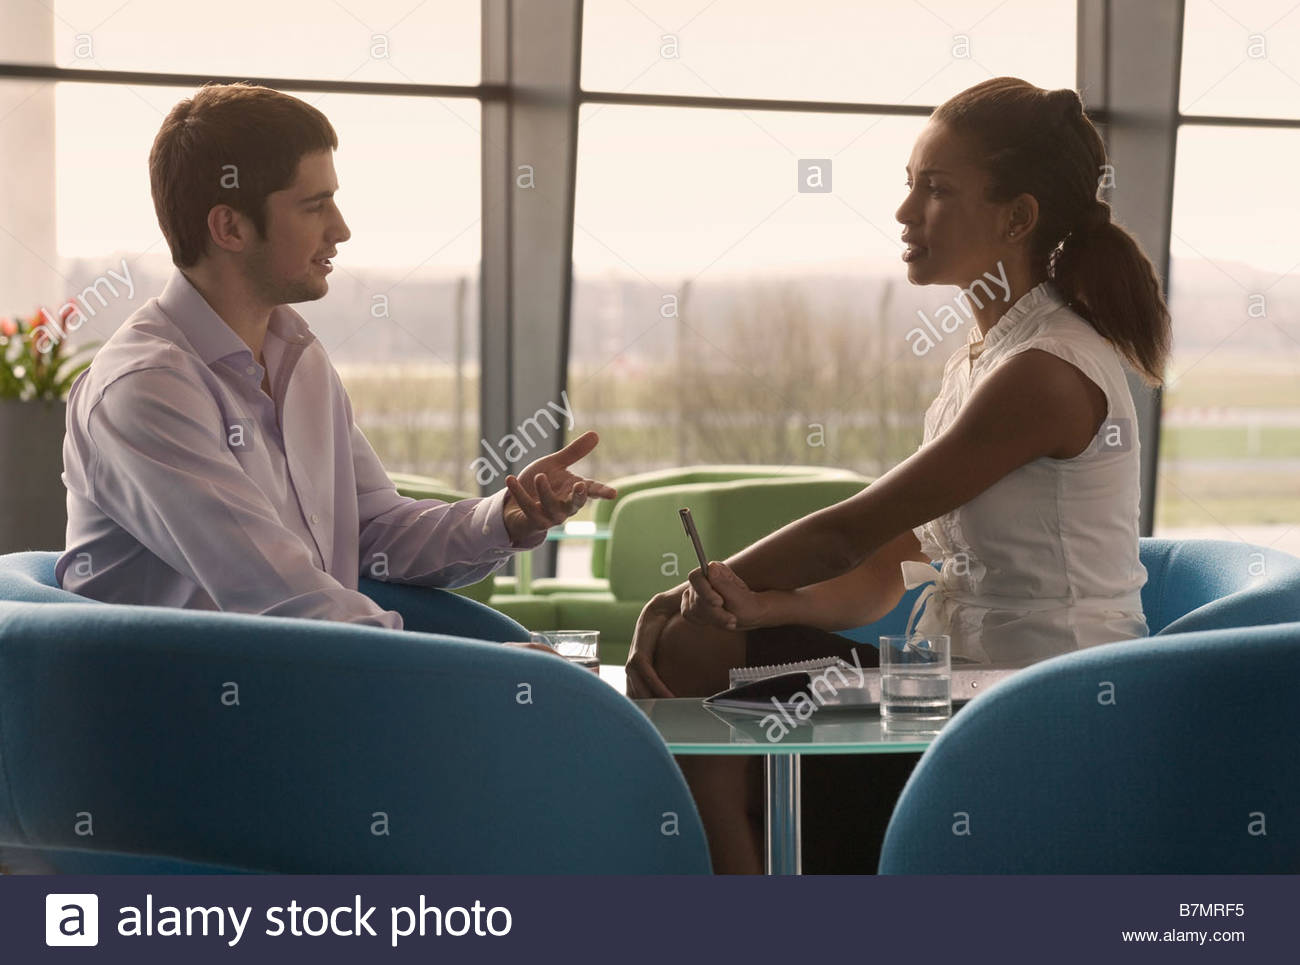 Two business colleagues sitting at a table, having a meeting - Stock Image